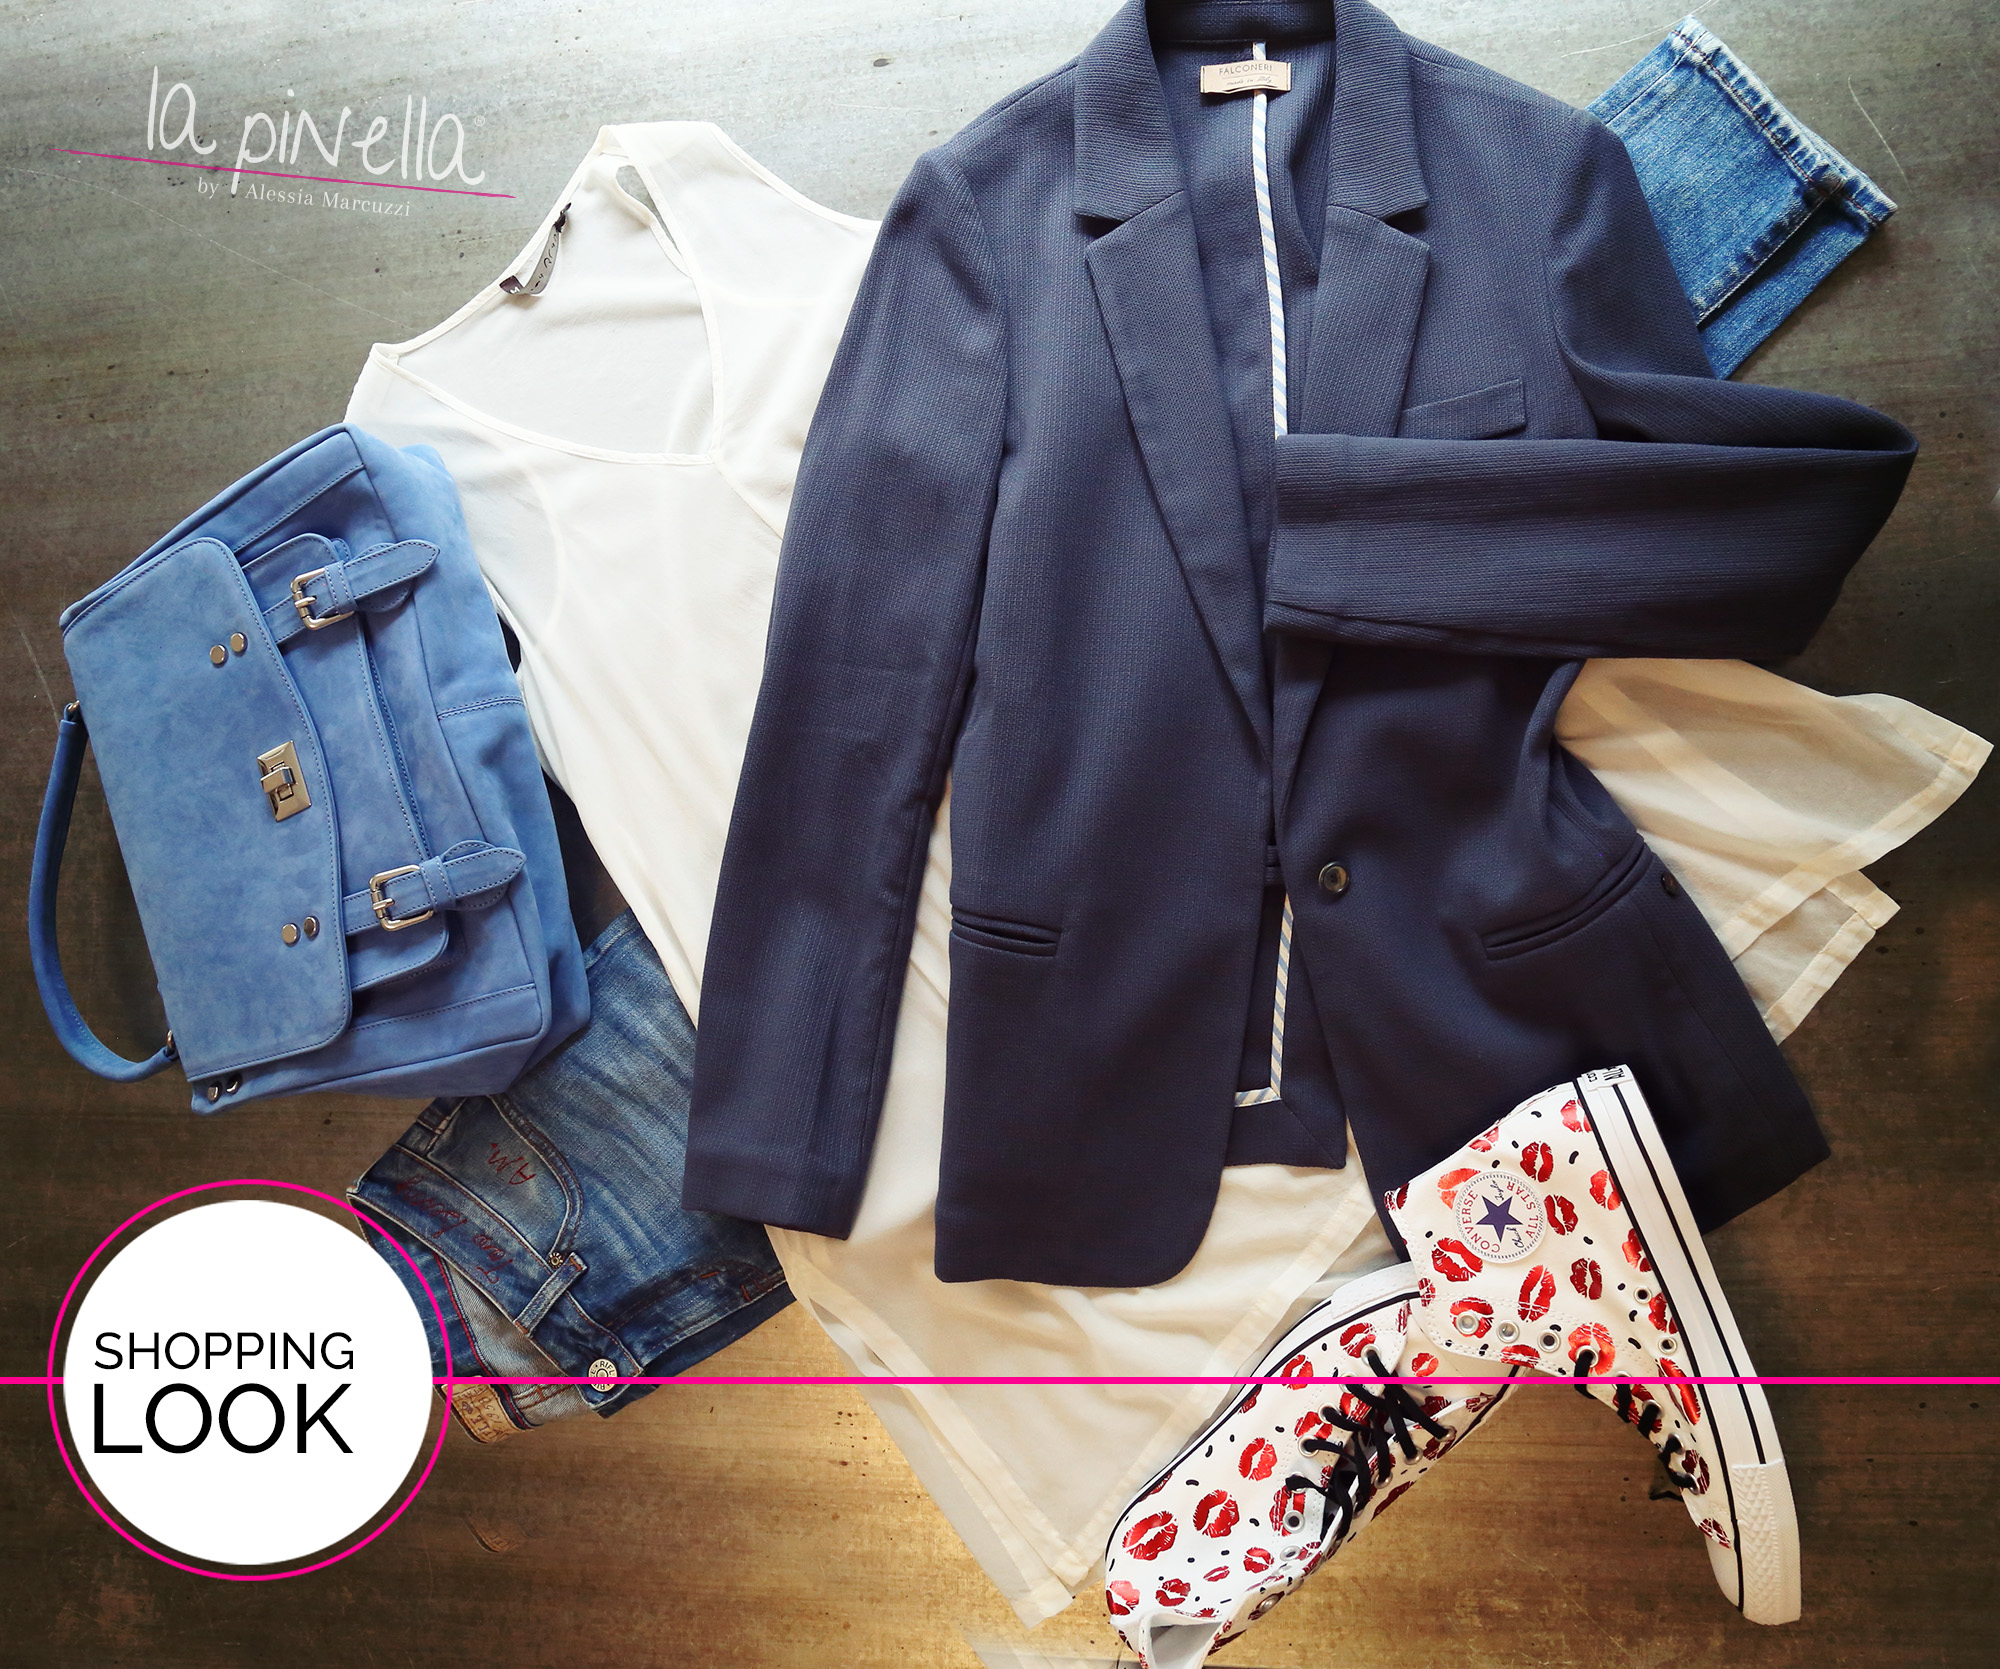 2_shopping_look_rev